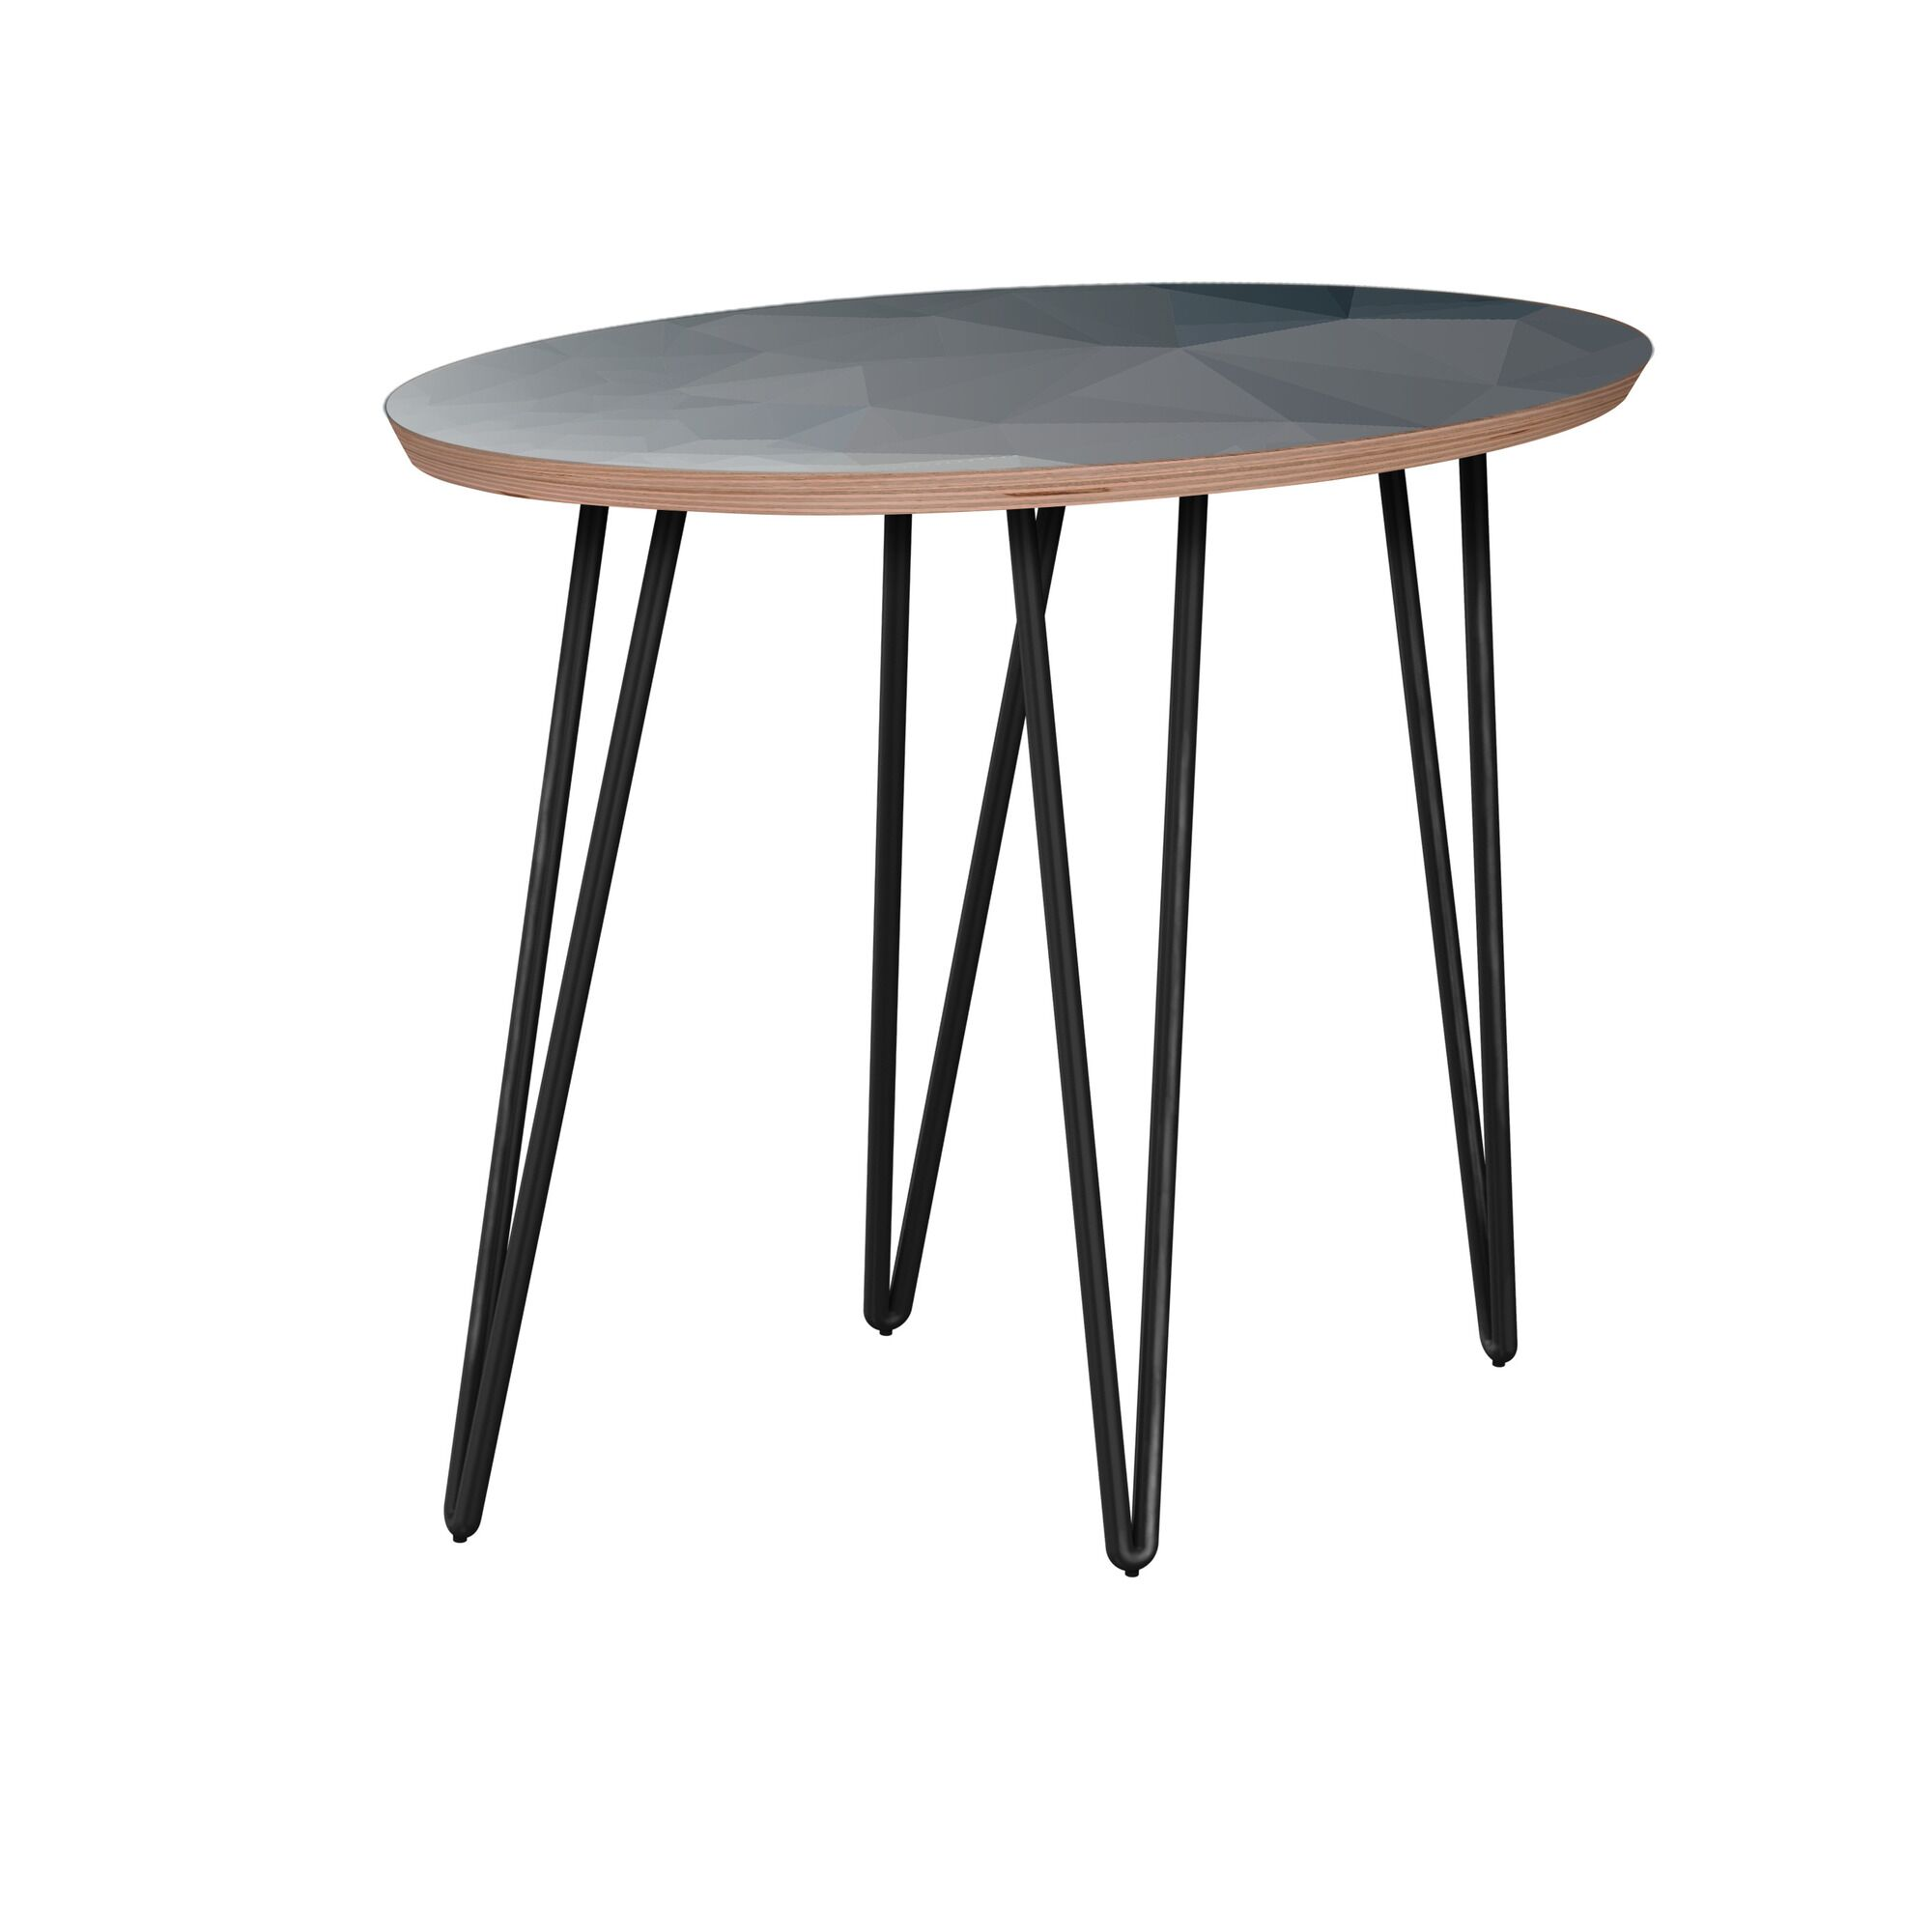 Rhoton End Table Table Base Color: Black, Table Top Boarder Color: Walnut, Table Top Color: Blue